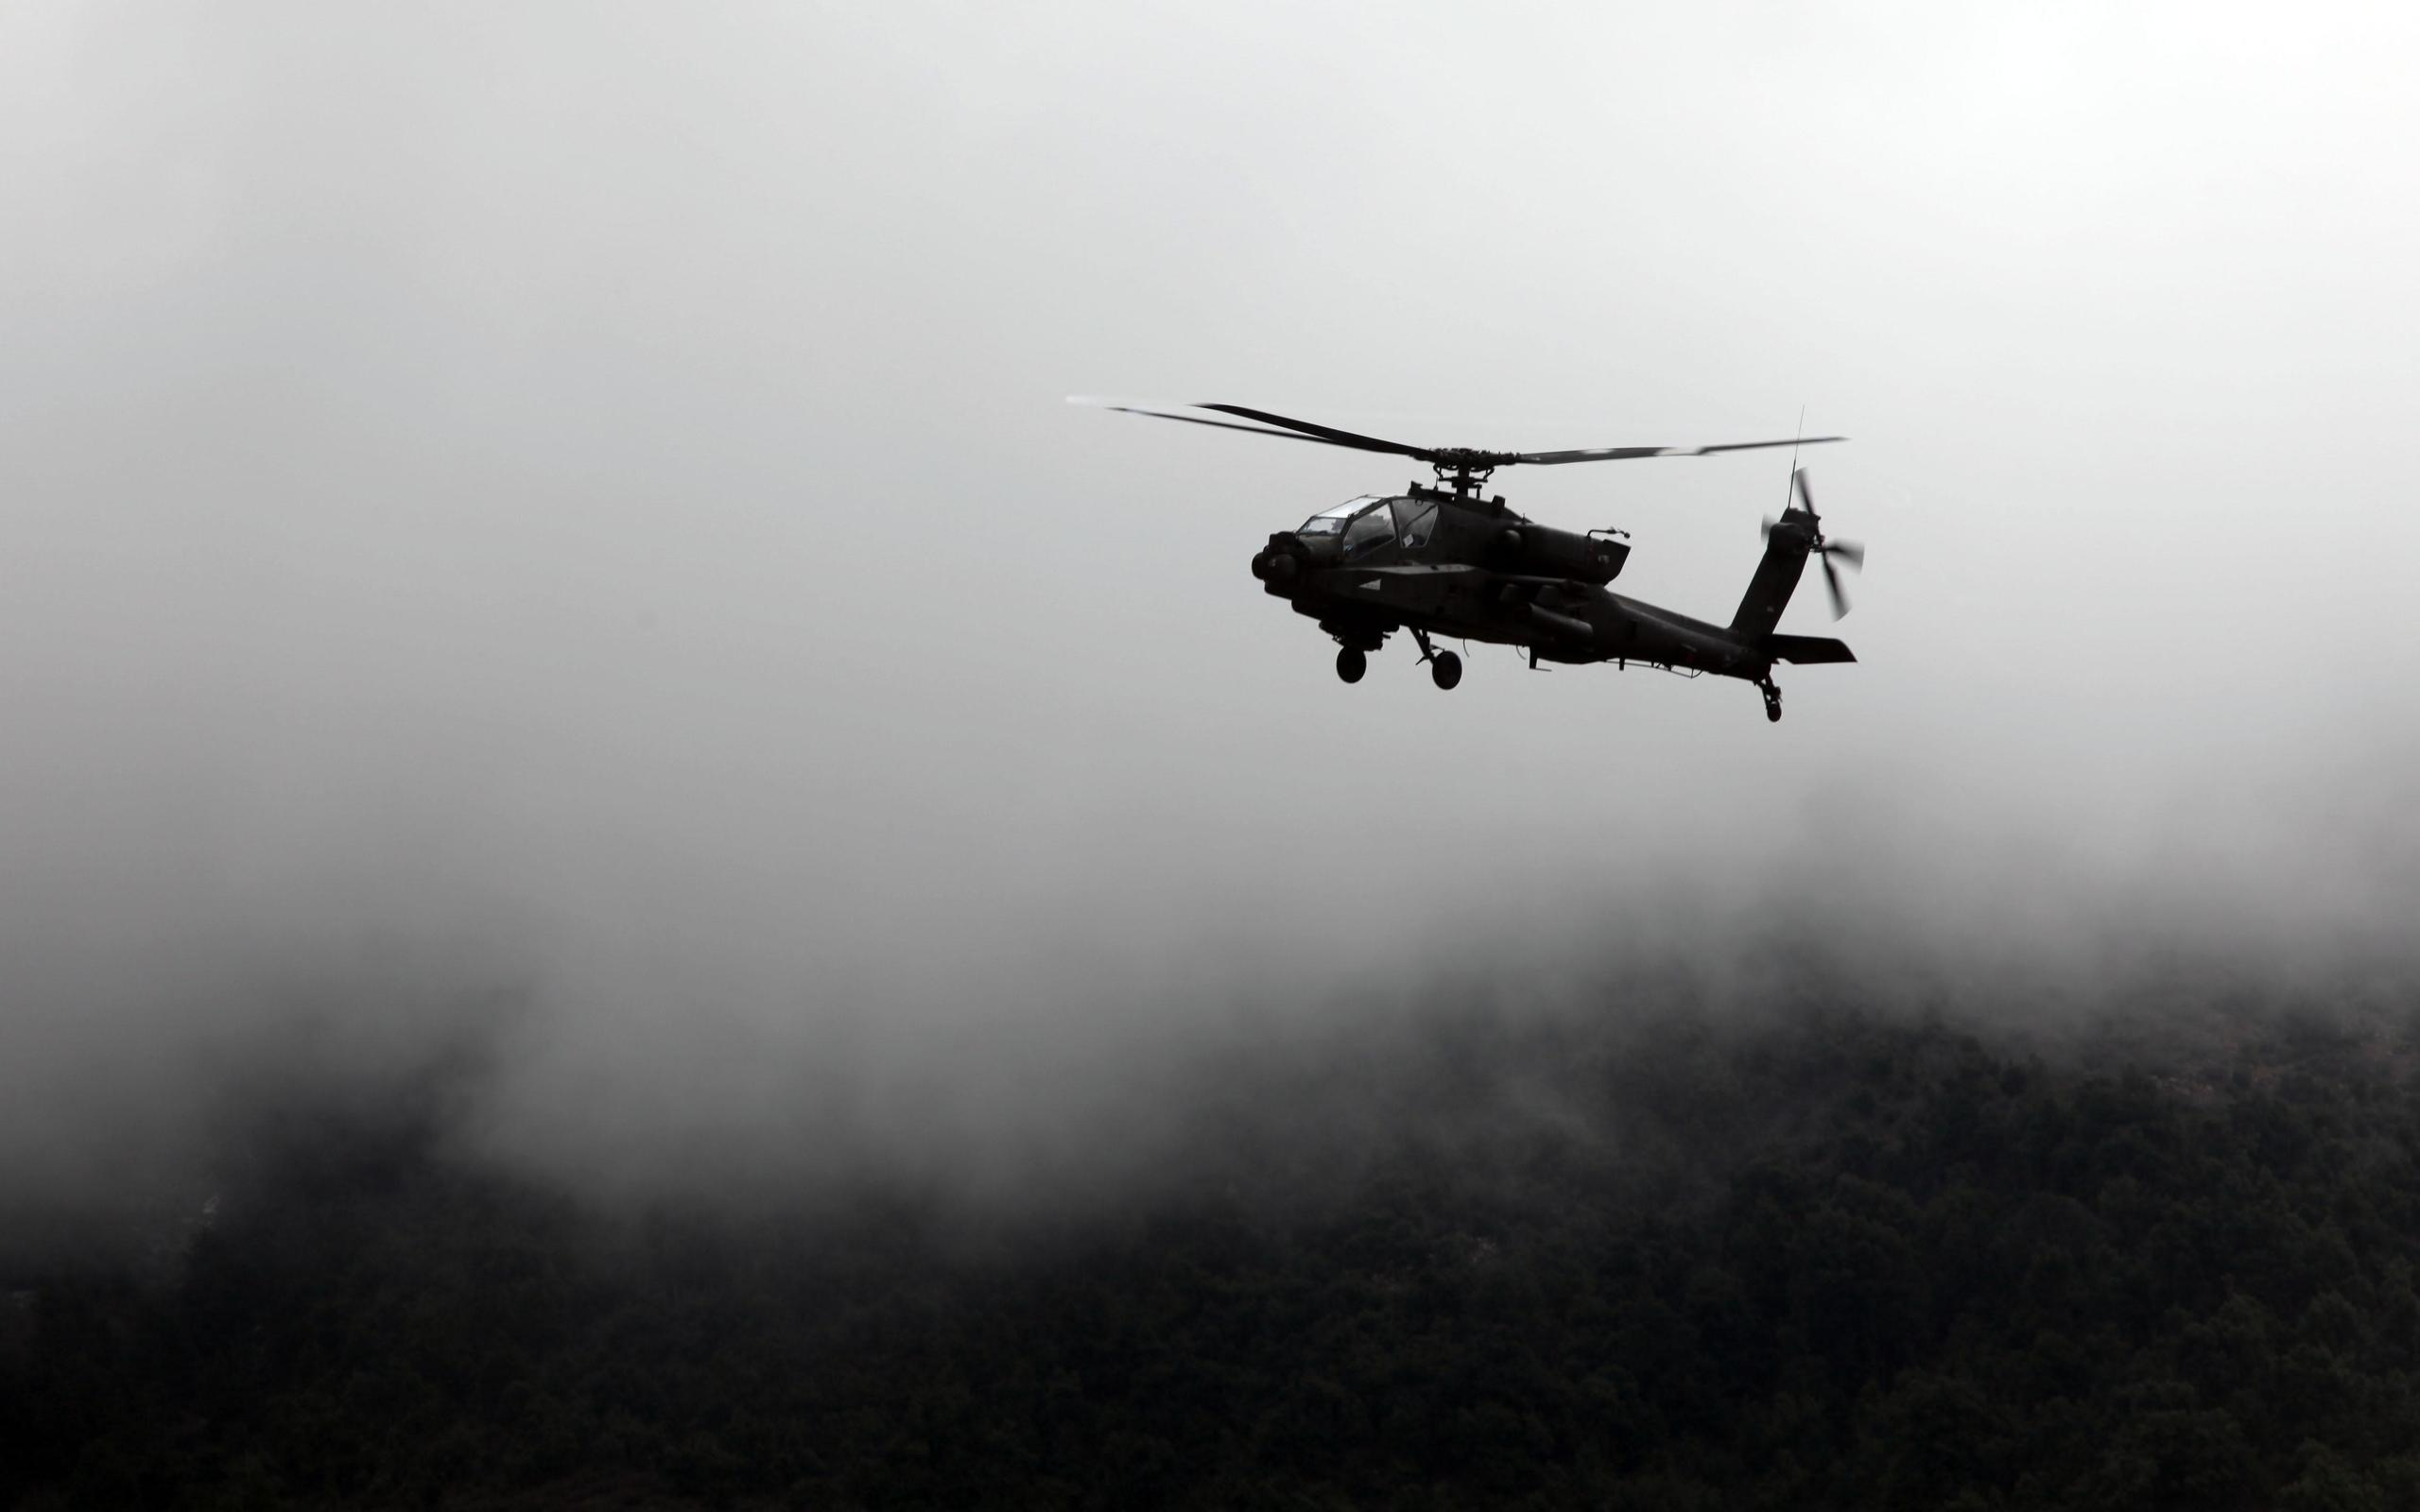 Helicopter Wallpaper 17